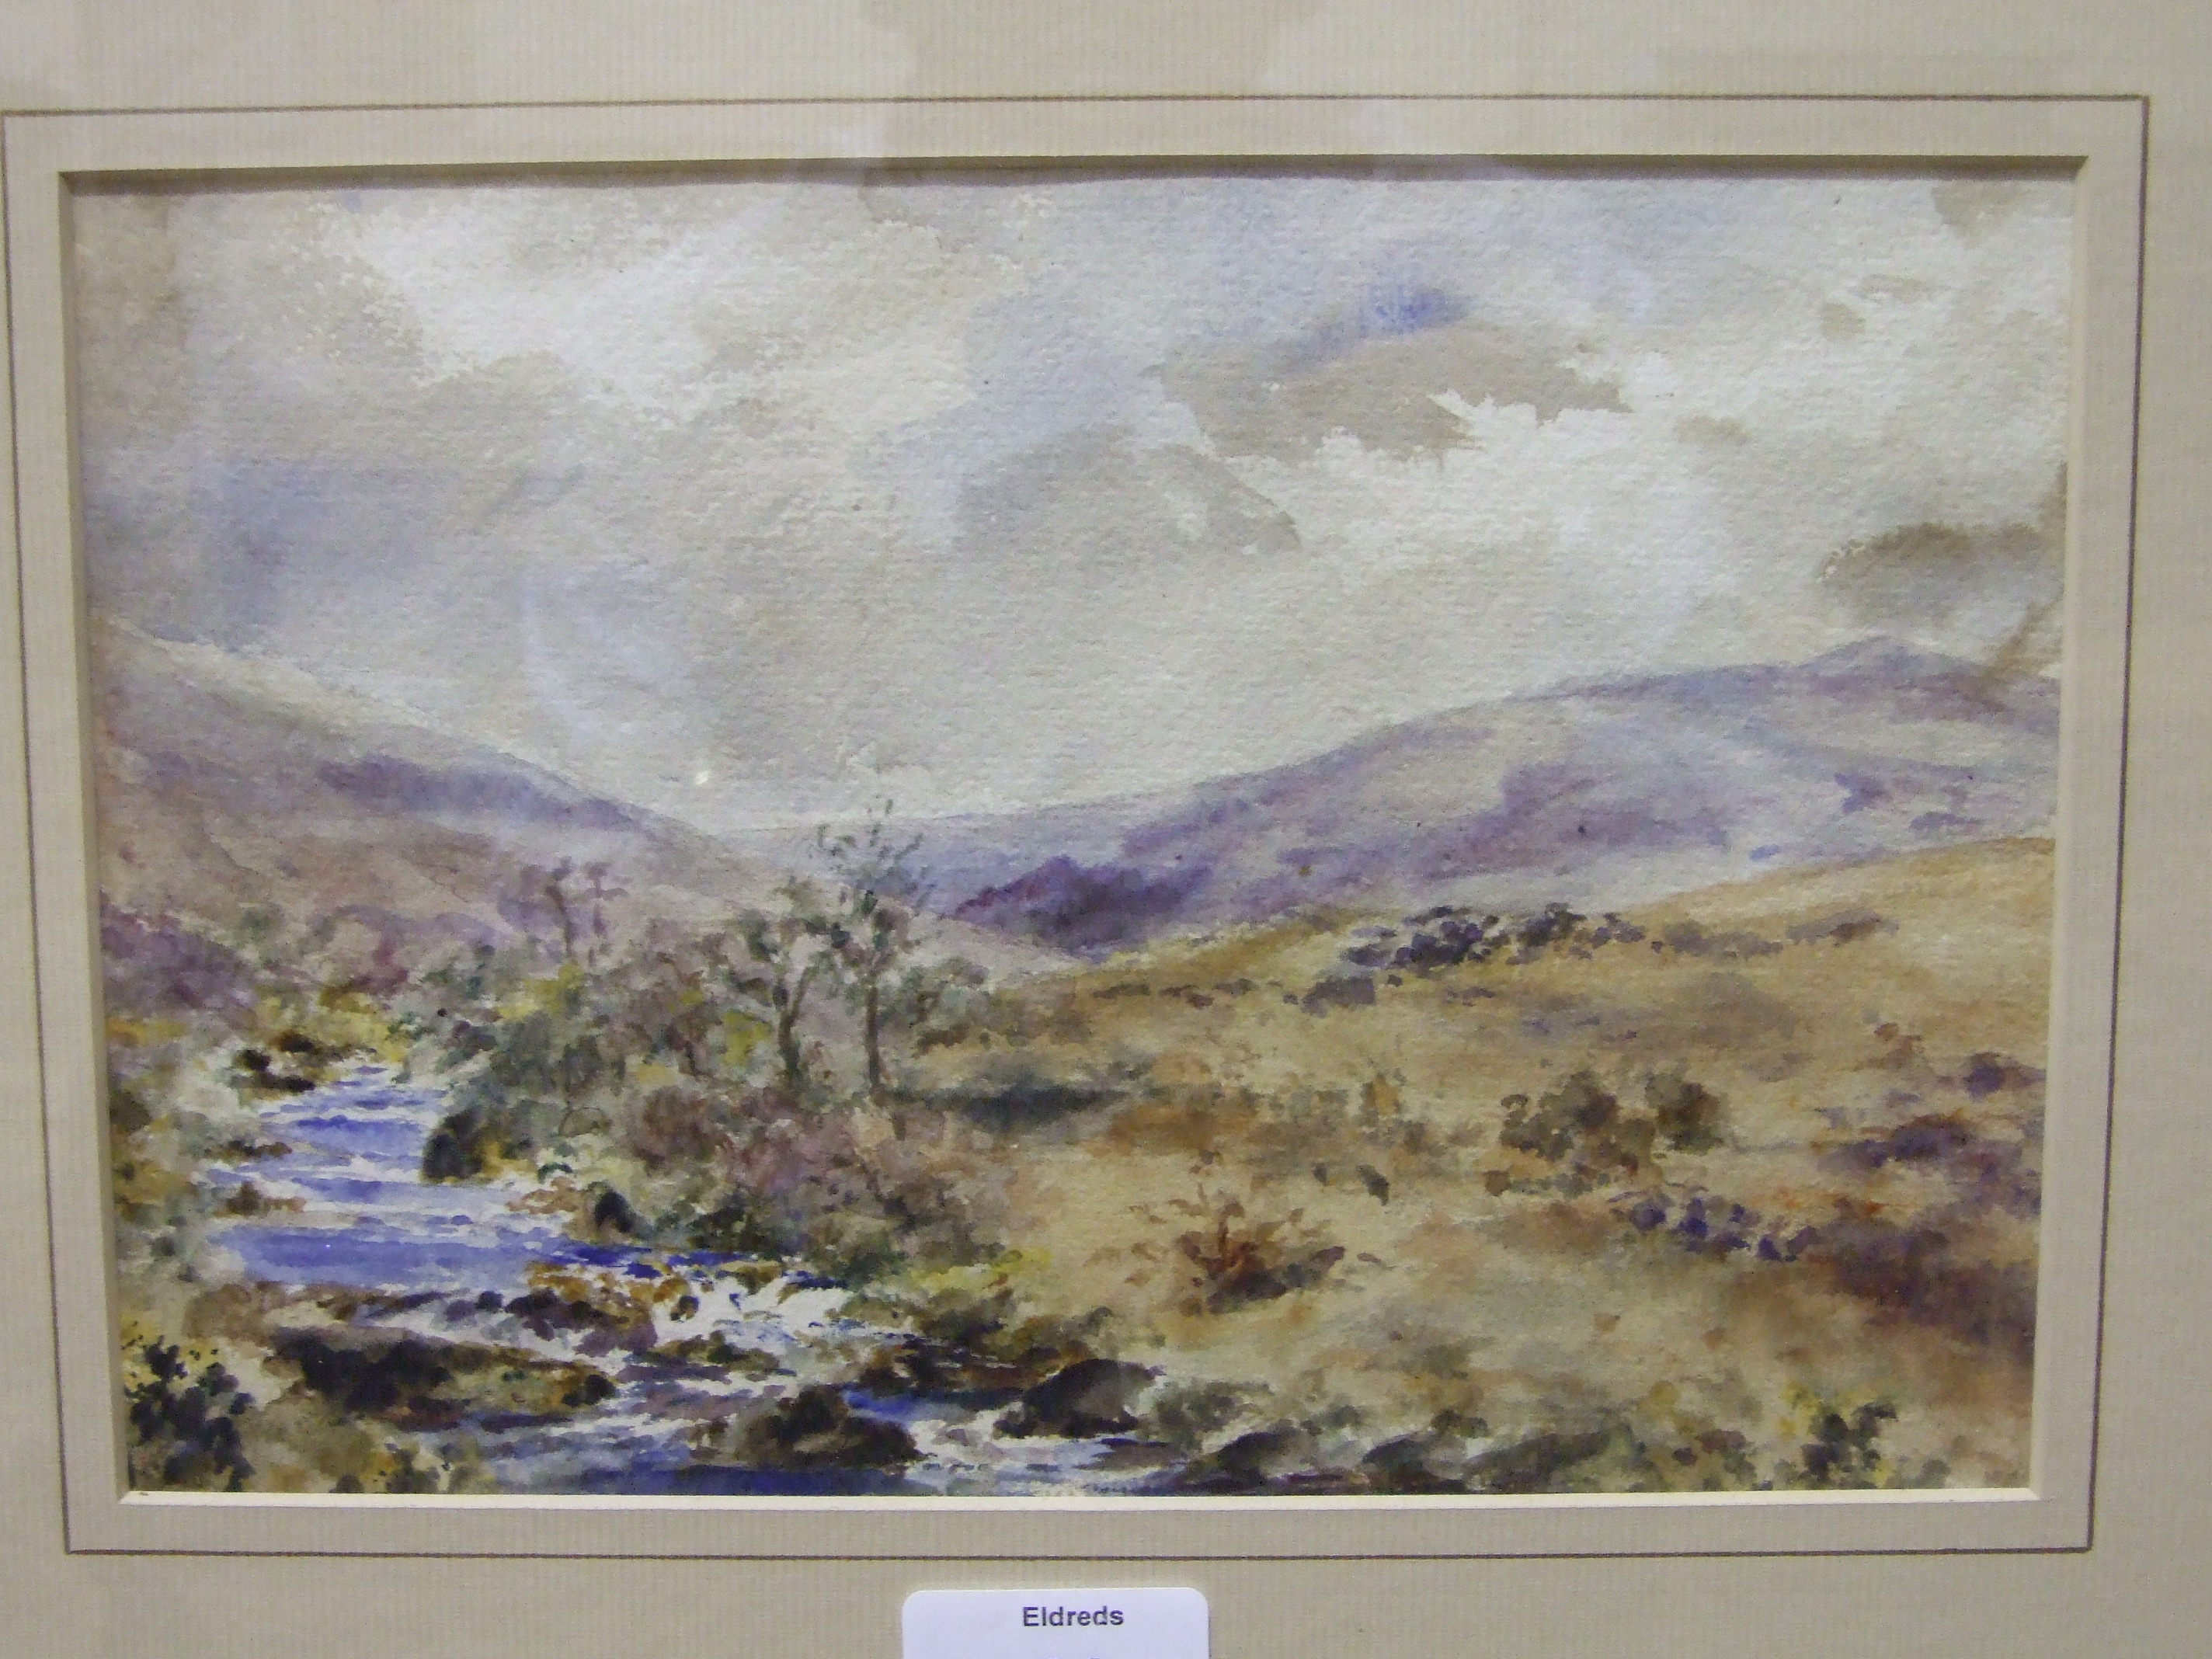 R W Holman TAVY-CLEAVE, DARTMOOR Signed watercolour, 20 x 30cm and another by A Jukes-Browne,